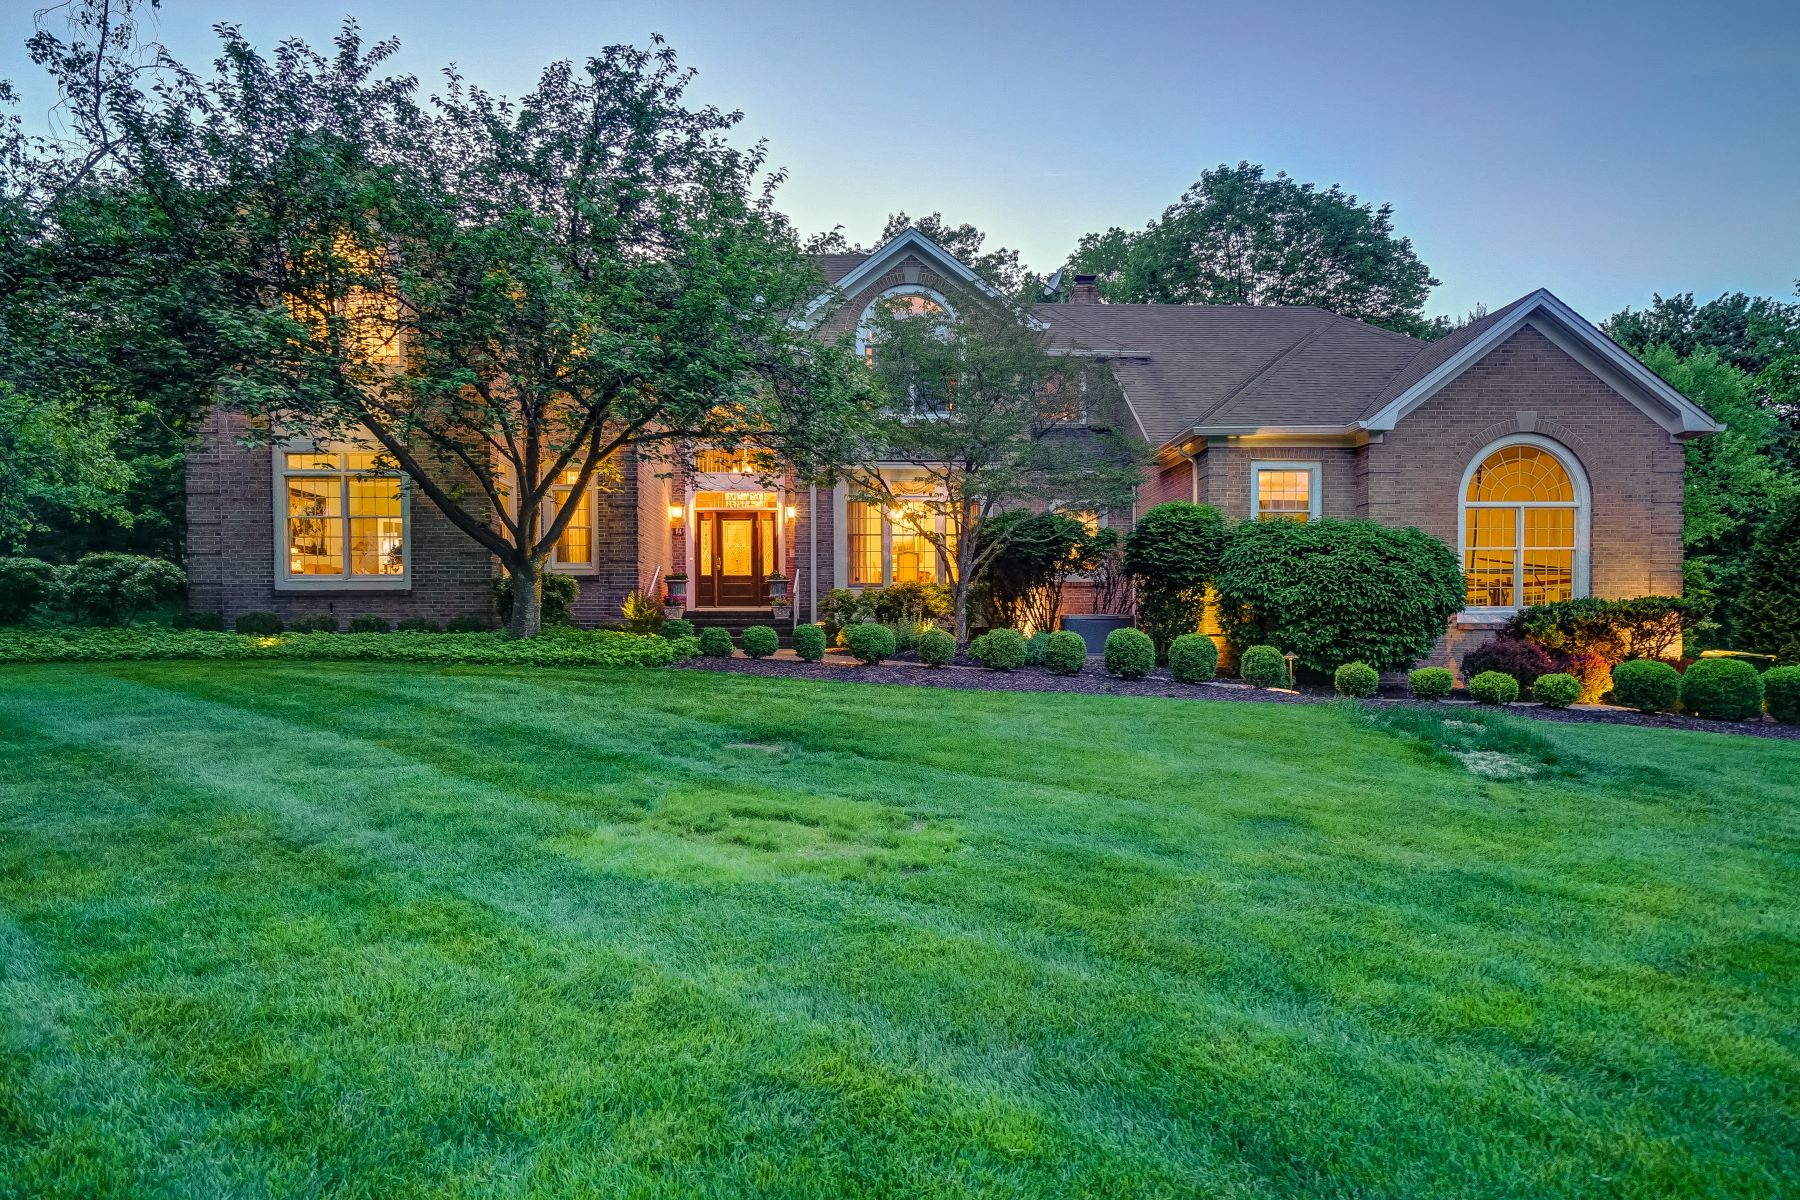 Single Family Home for Sale at Elegant Colonial 14 Heath Drive Bridgewater, New Jersey 08807 United States